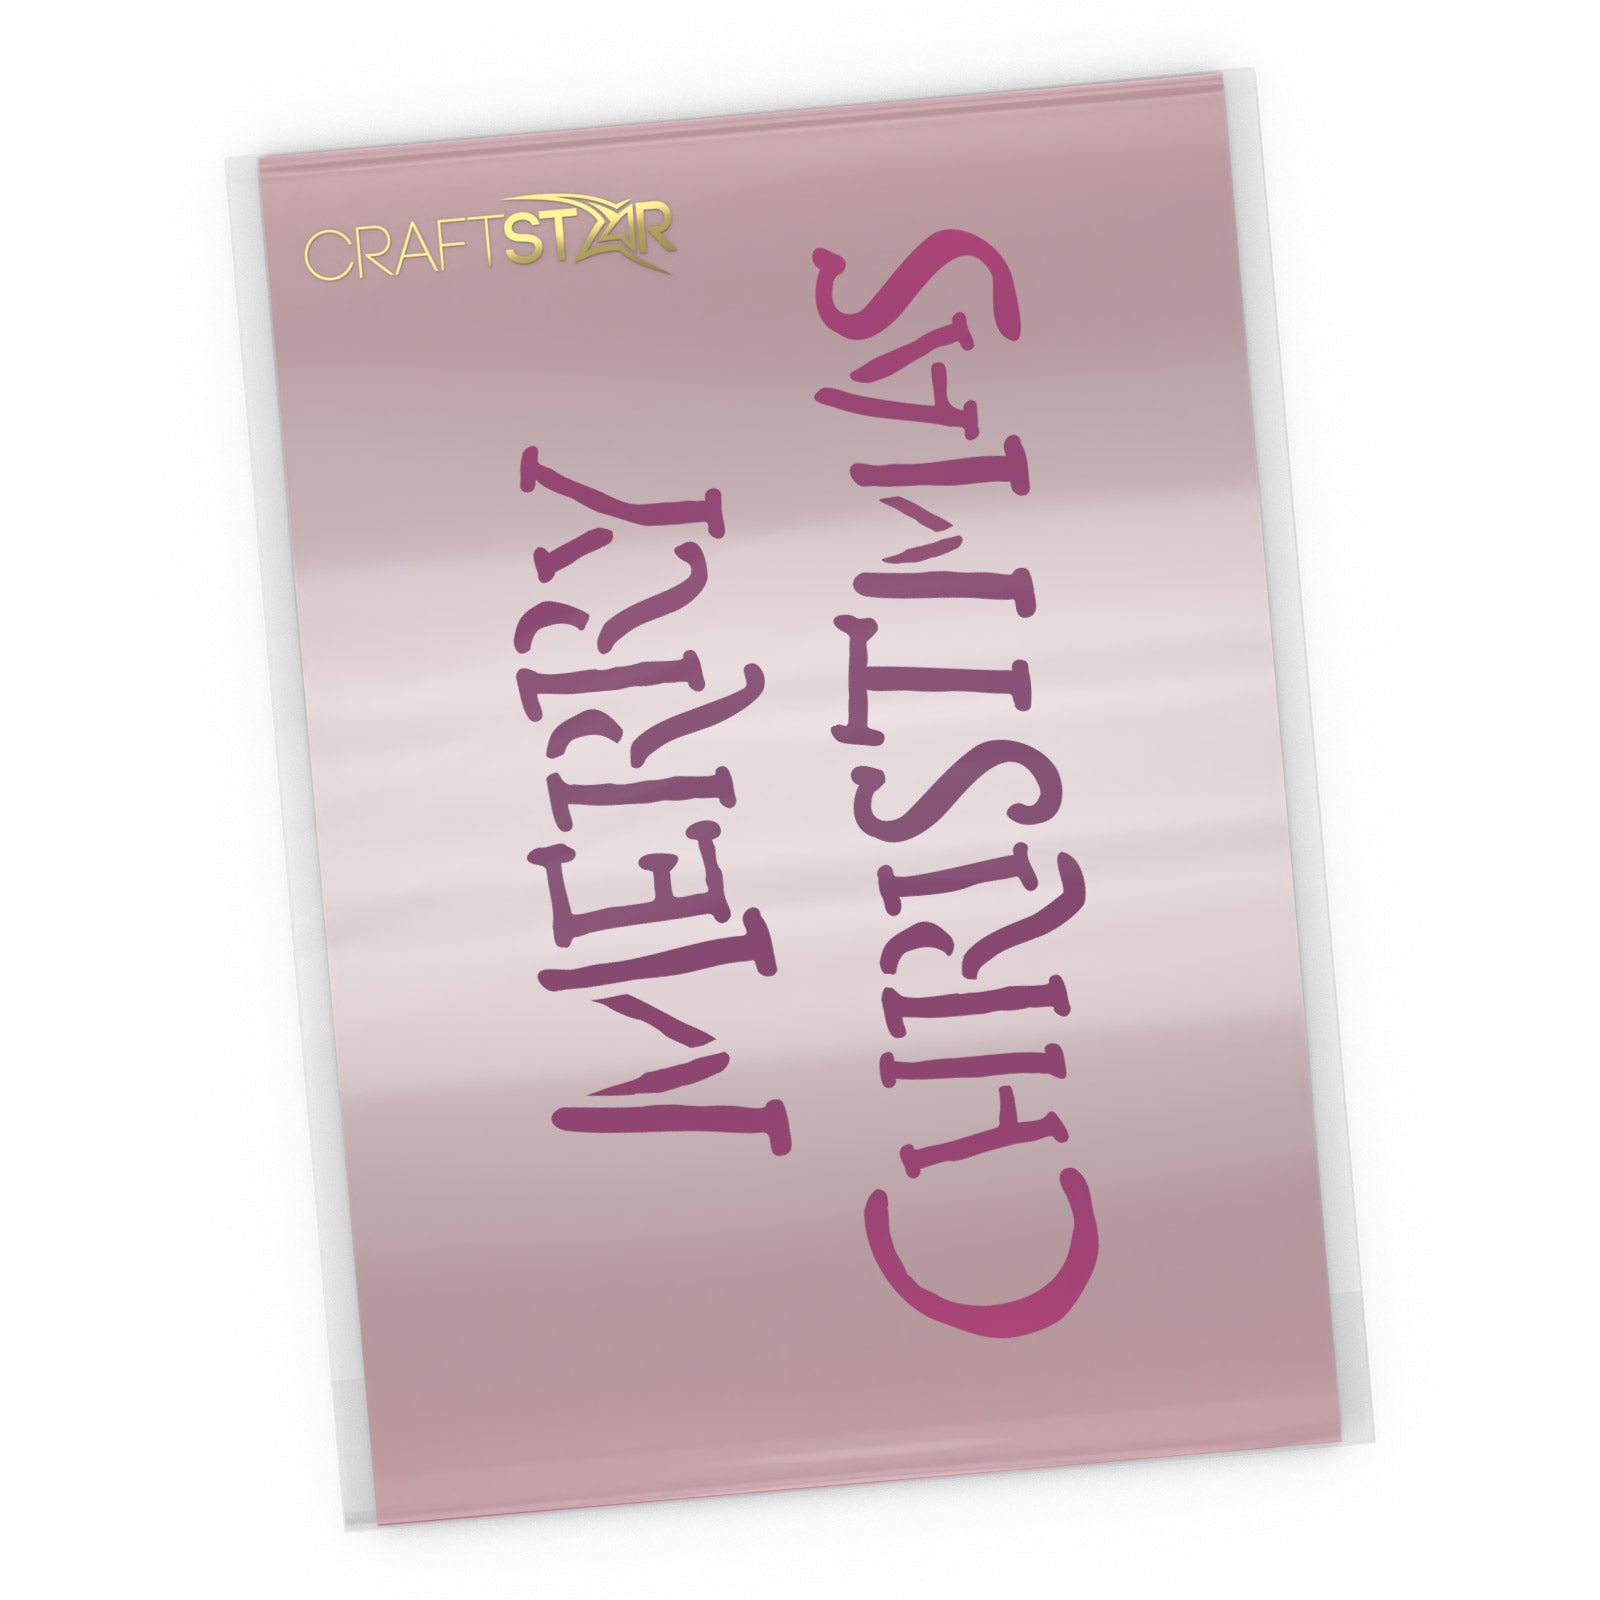 Merry Christmas Stencil - Hand Written Style - Christmas Craft Template